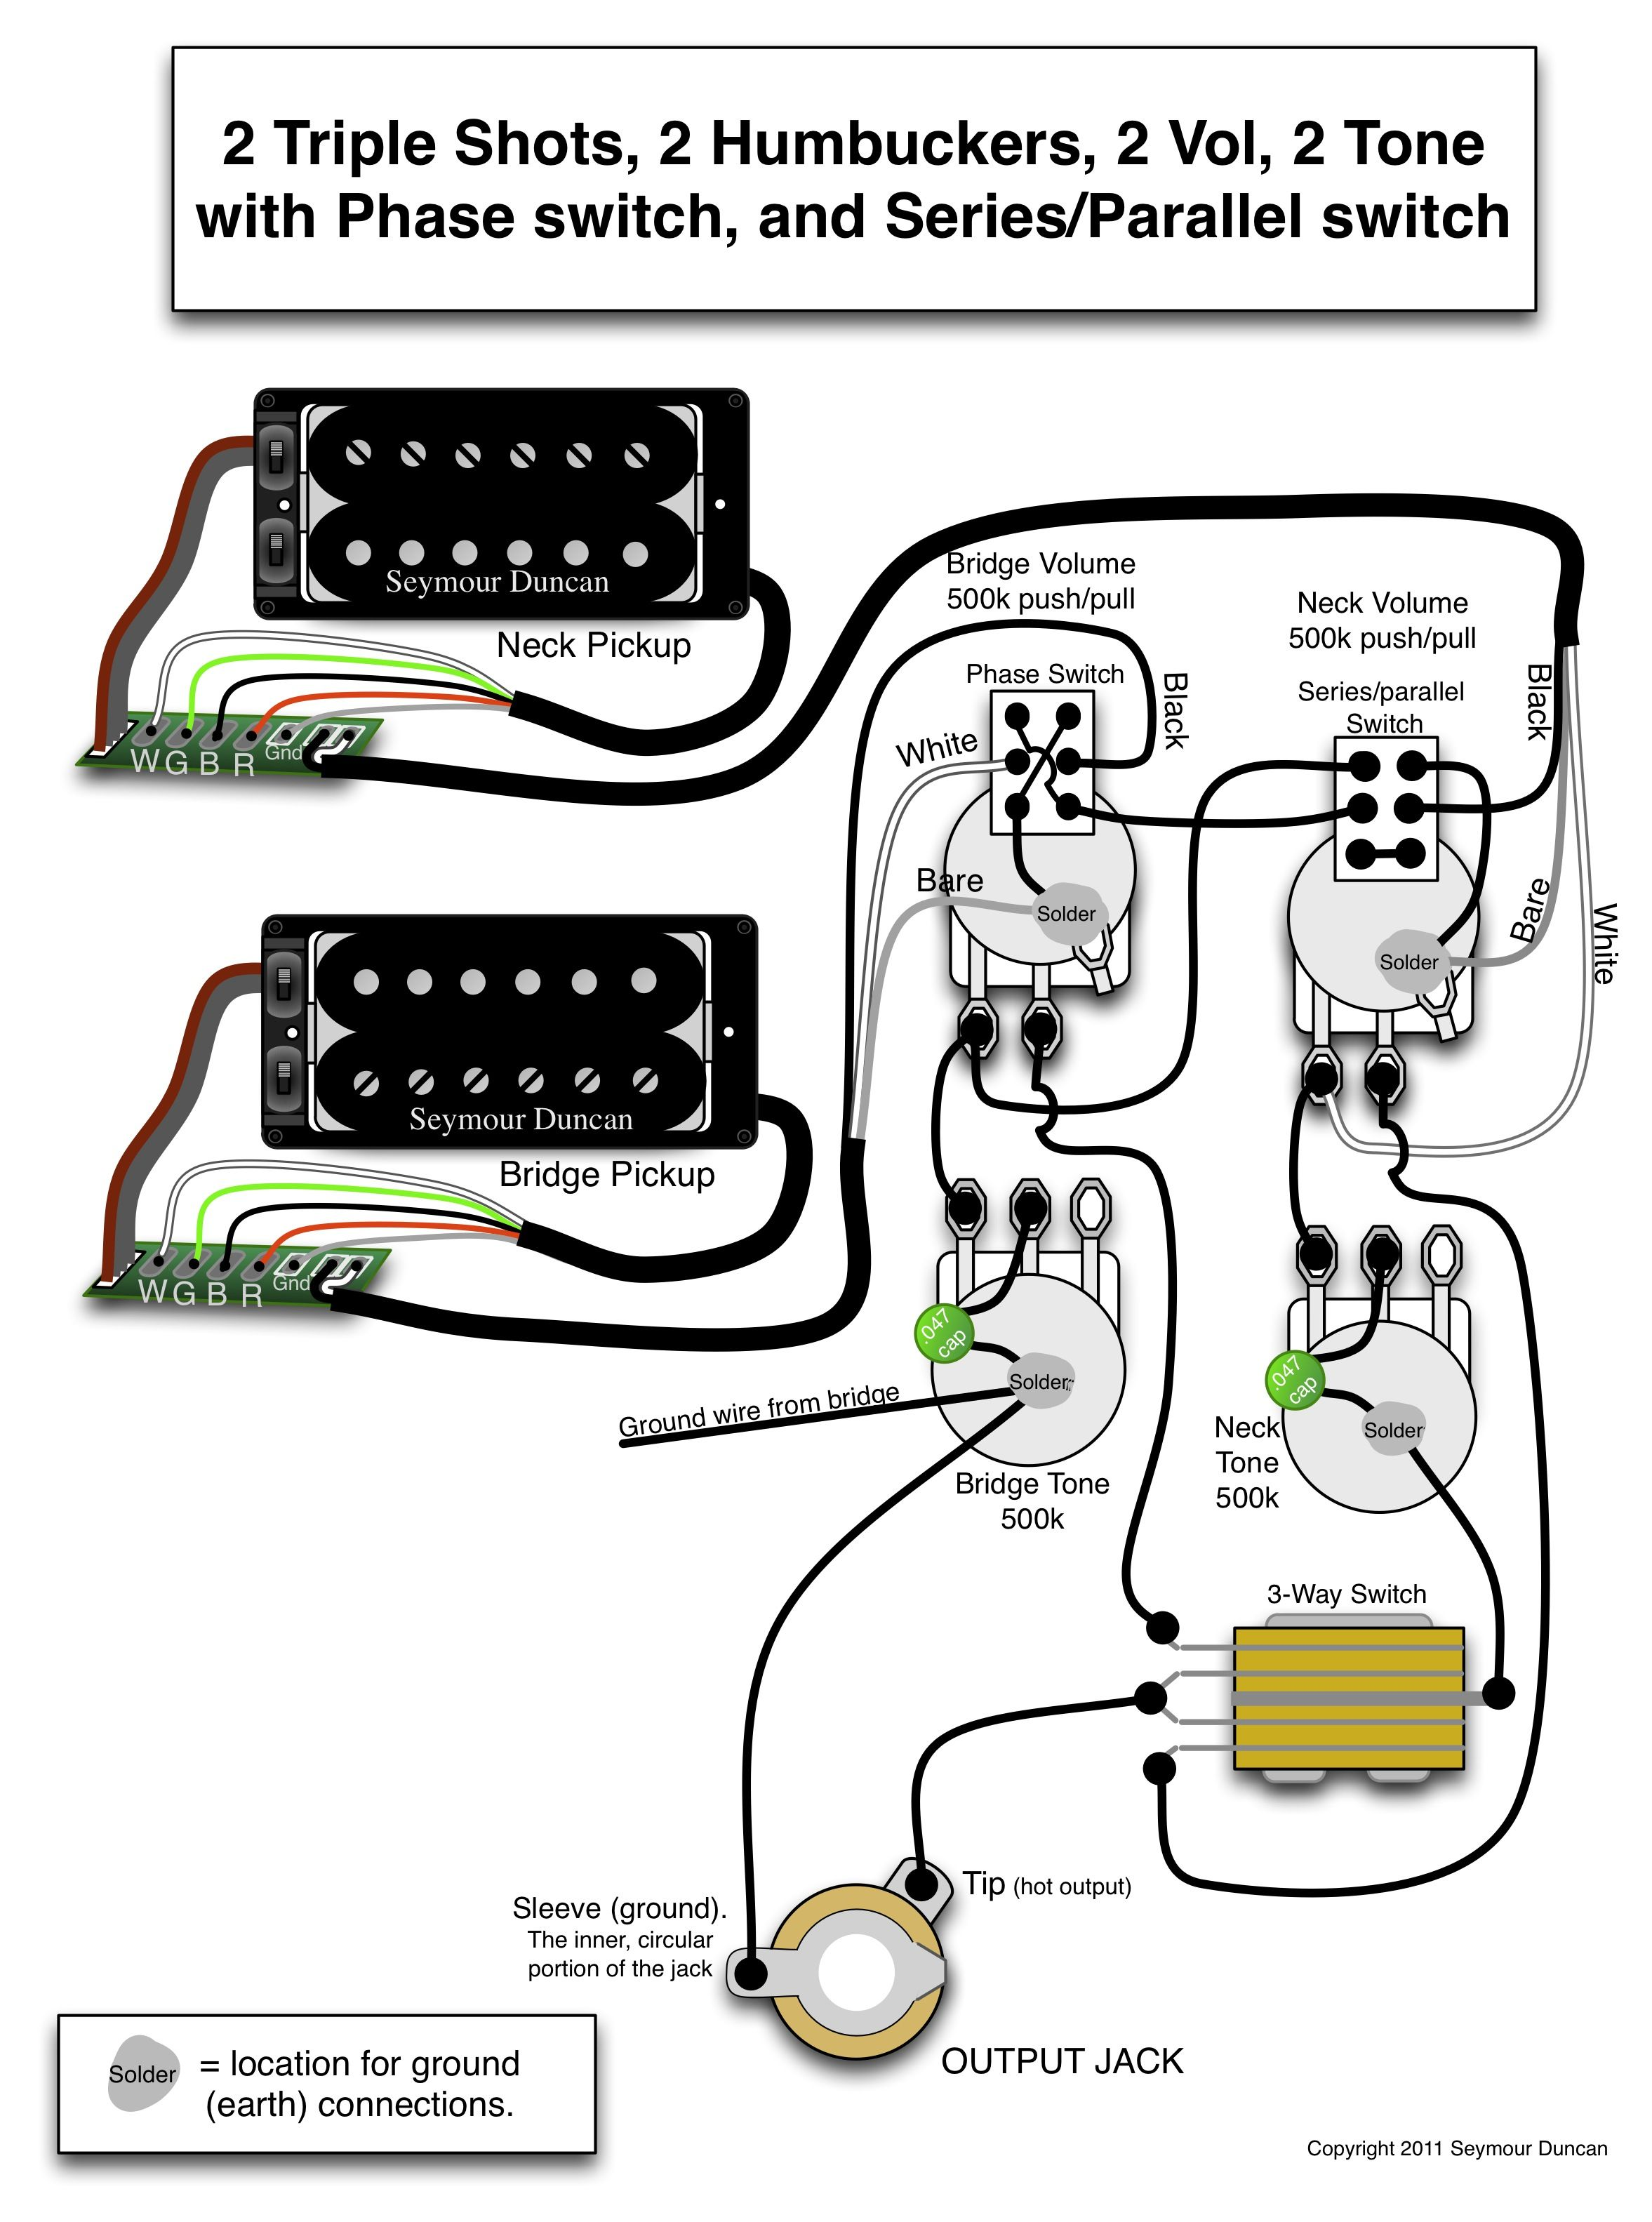 14dc4408abcf3c075a00cd280c1ea7ec seymour duncan wiring diagram 2 triple shots, 2 humbuckers, 2 seymour duncan sh-5 wiring diagram at creativeand.co